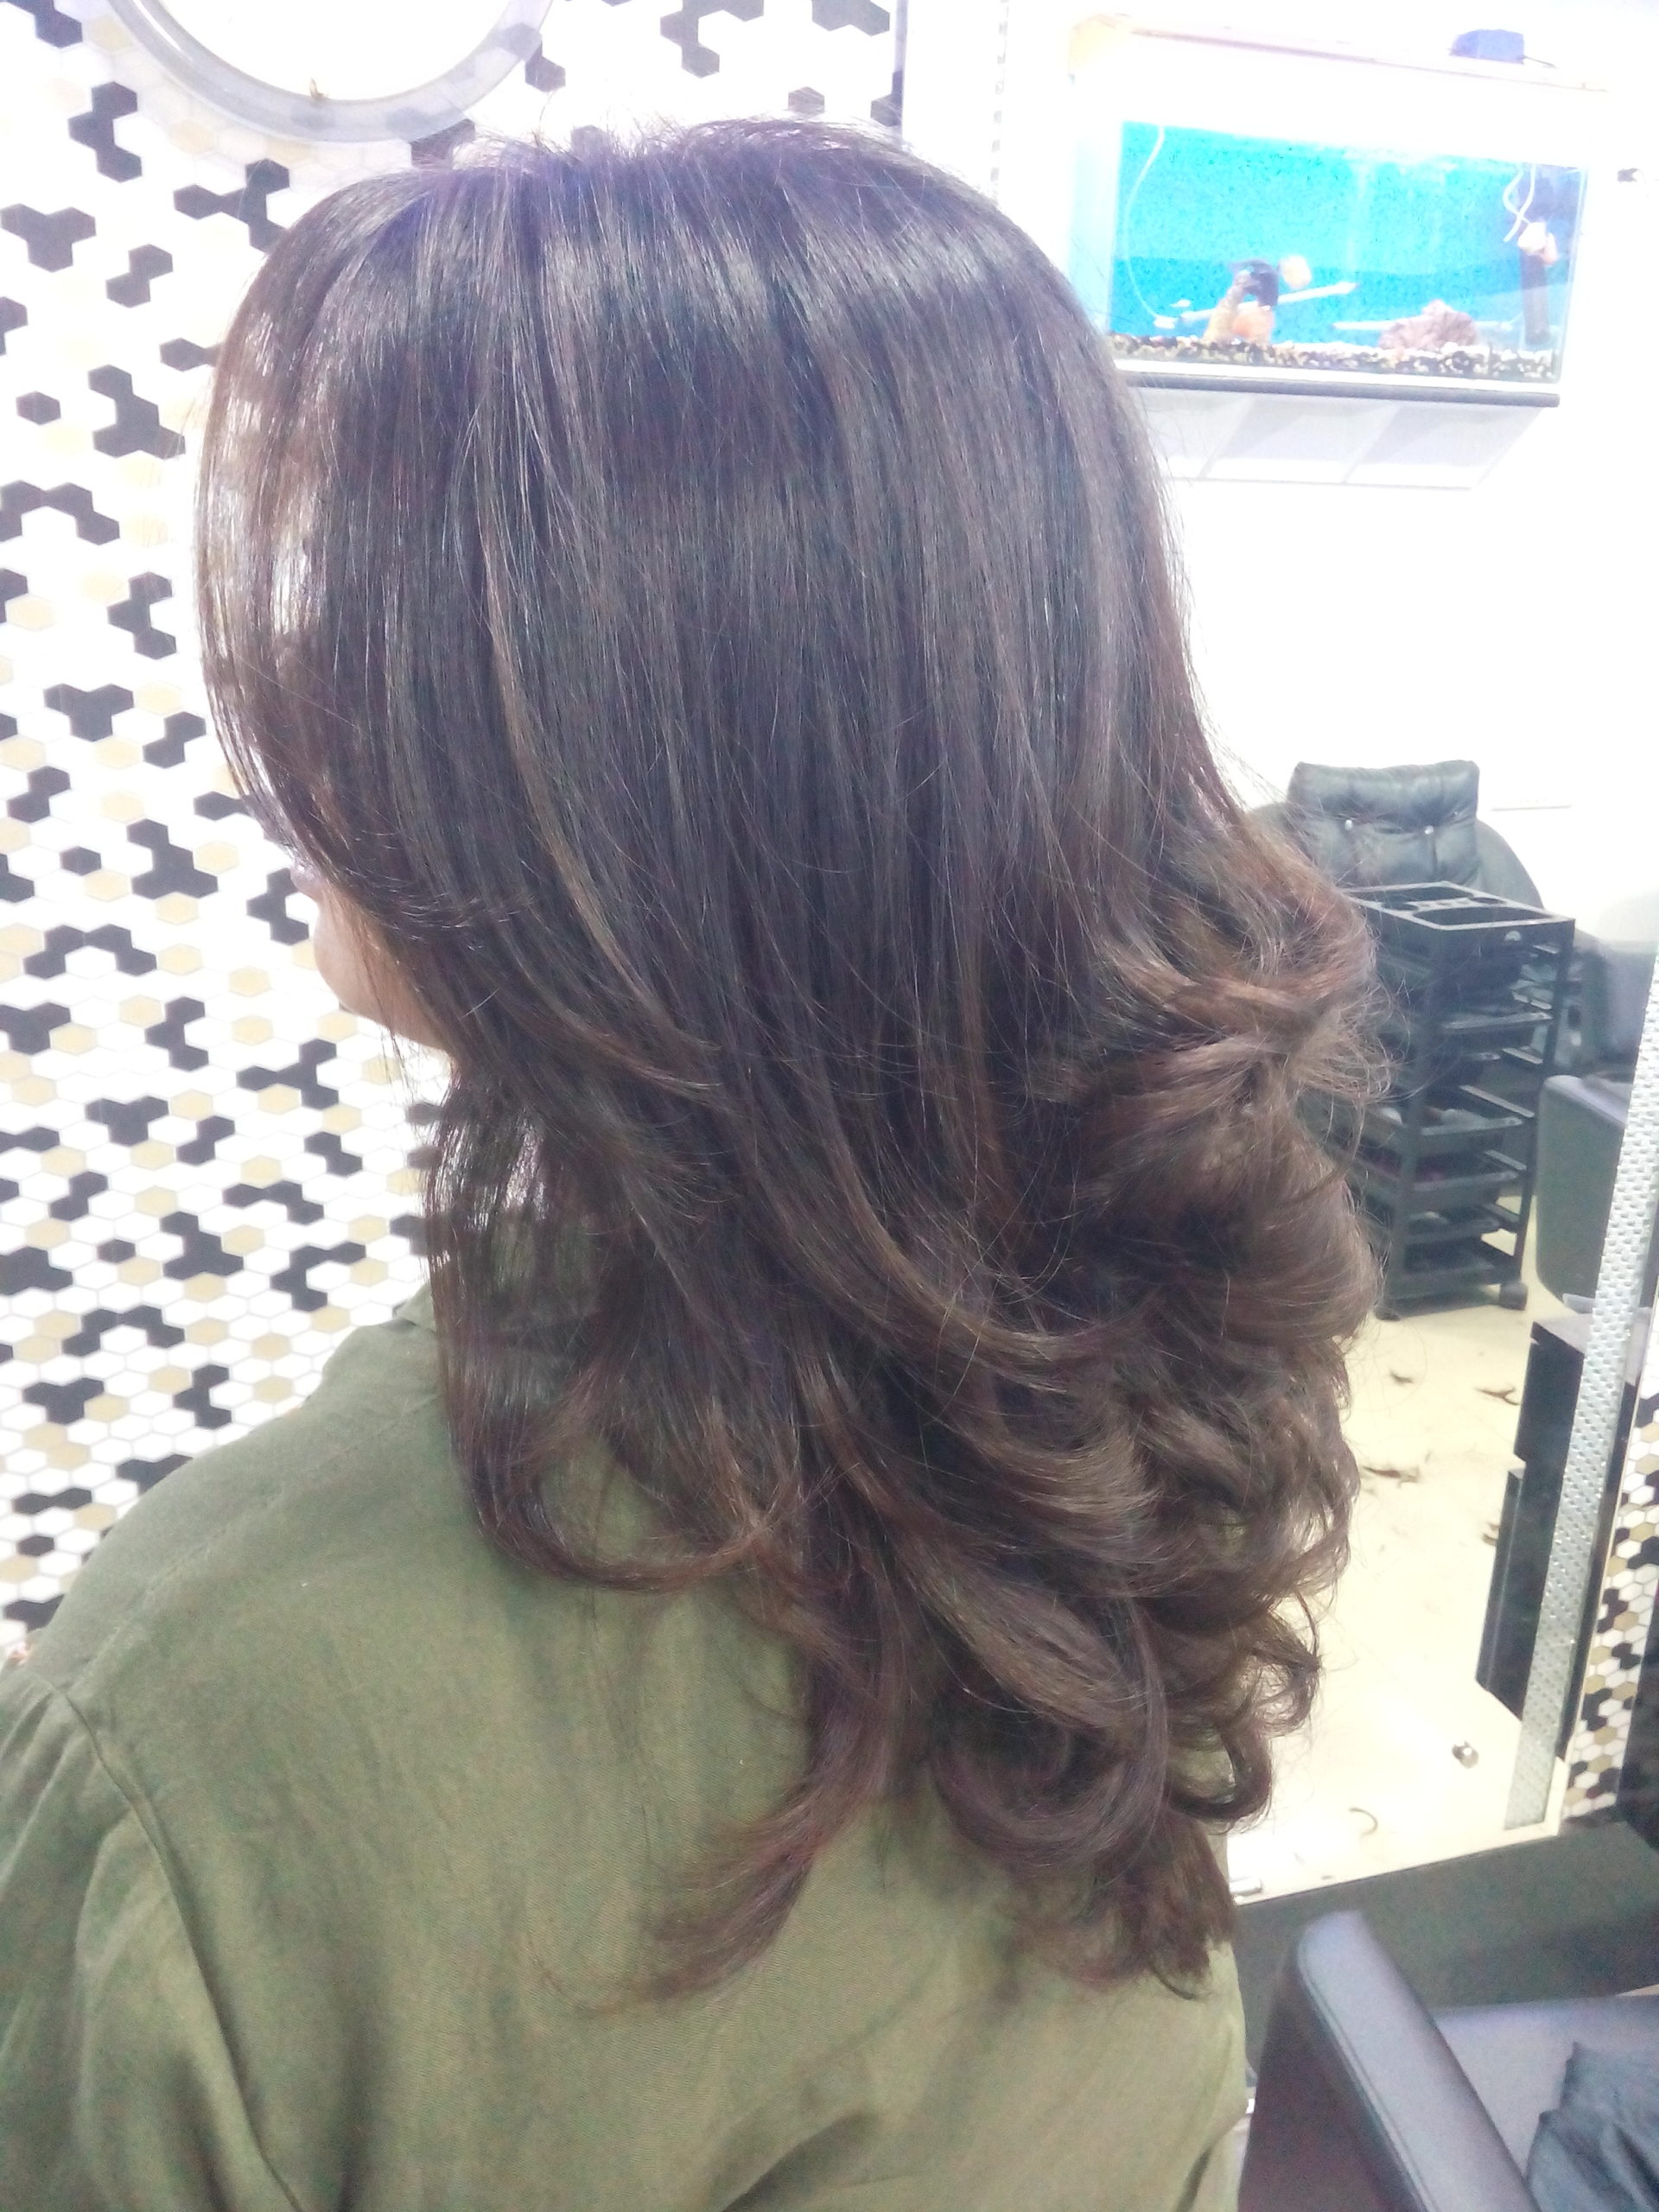 Showstopper Mira Road Hair Styling 3 Showstopper Salon Academy